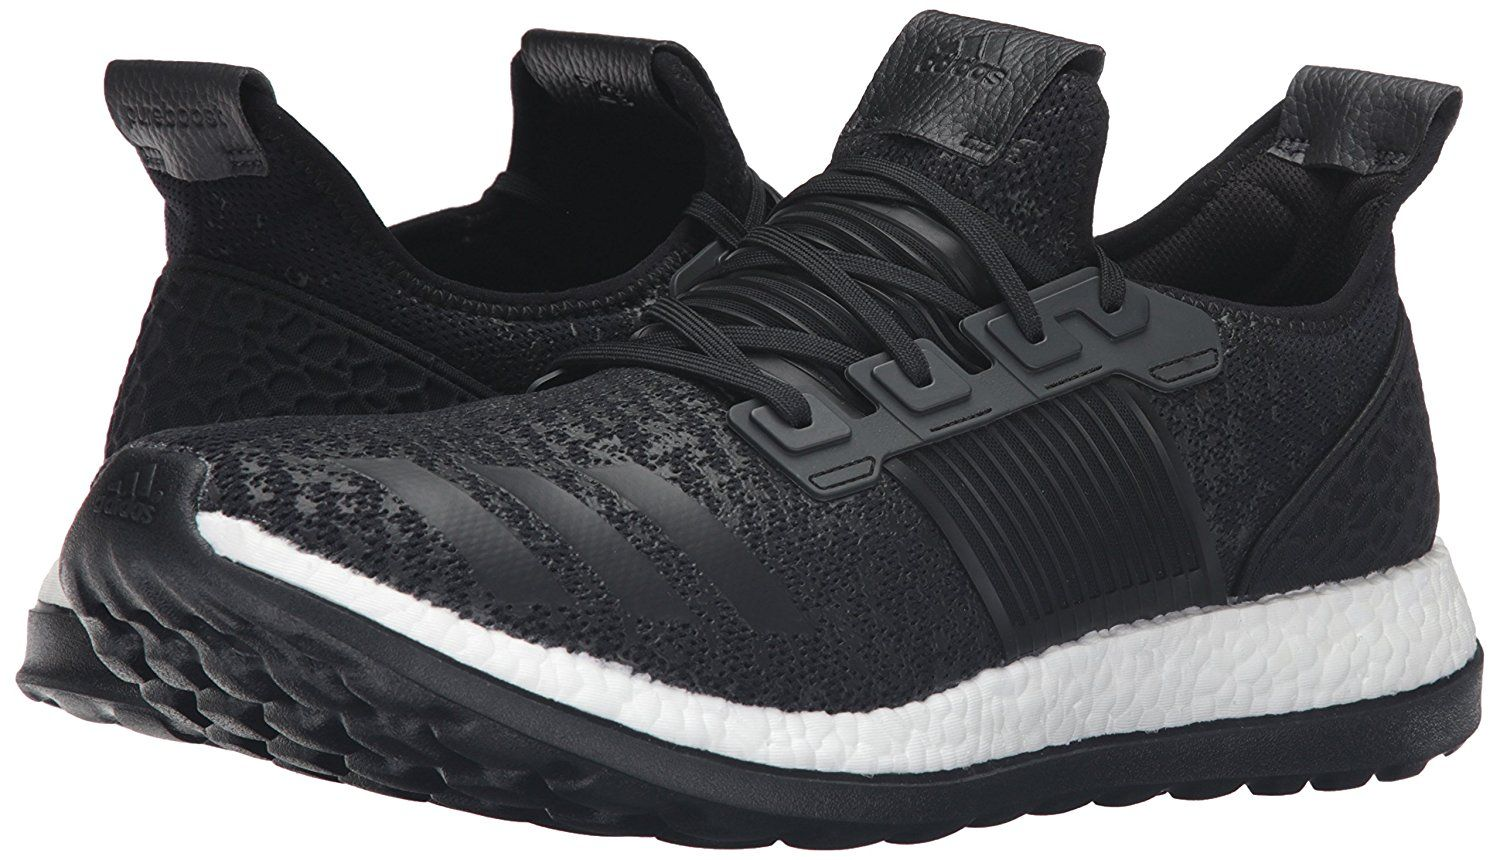 2aba94c63 ... core black 608b6 51880 order amazon adidas performance mens pureboost zg  running shoe shoes ab2d3 6b36e ...